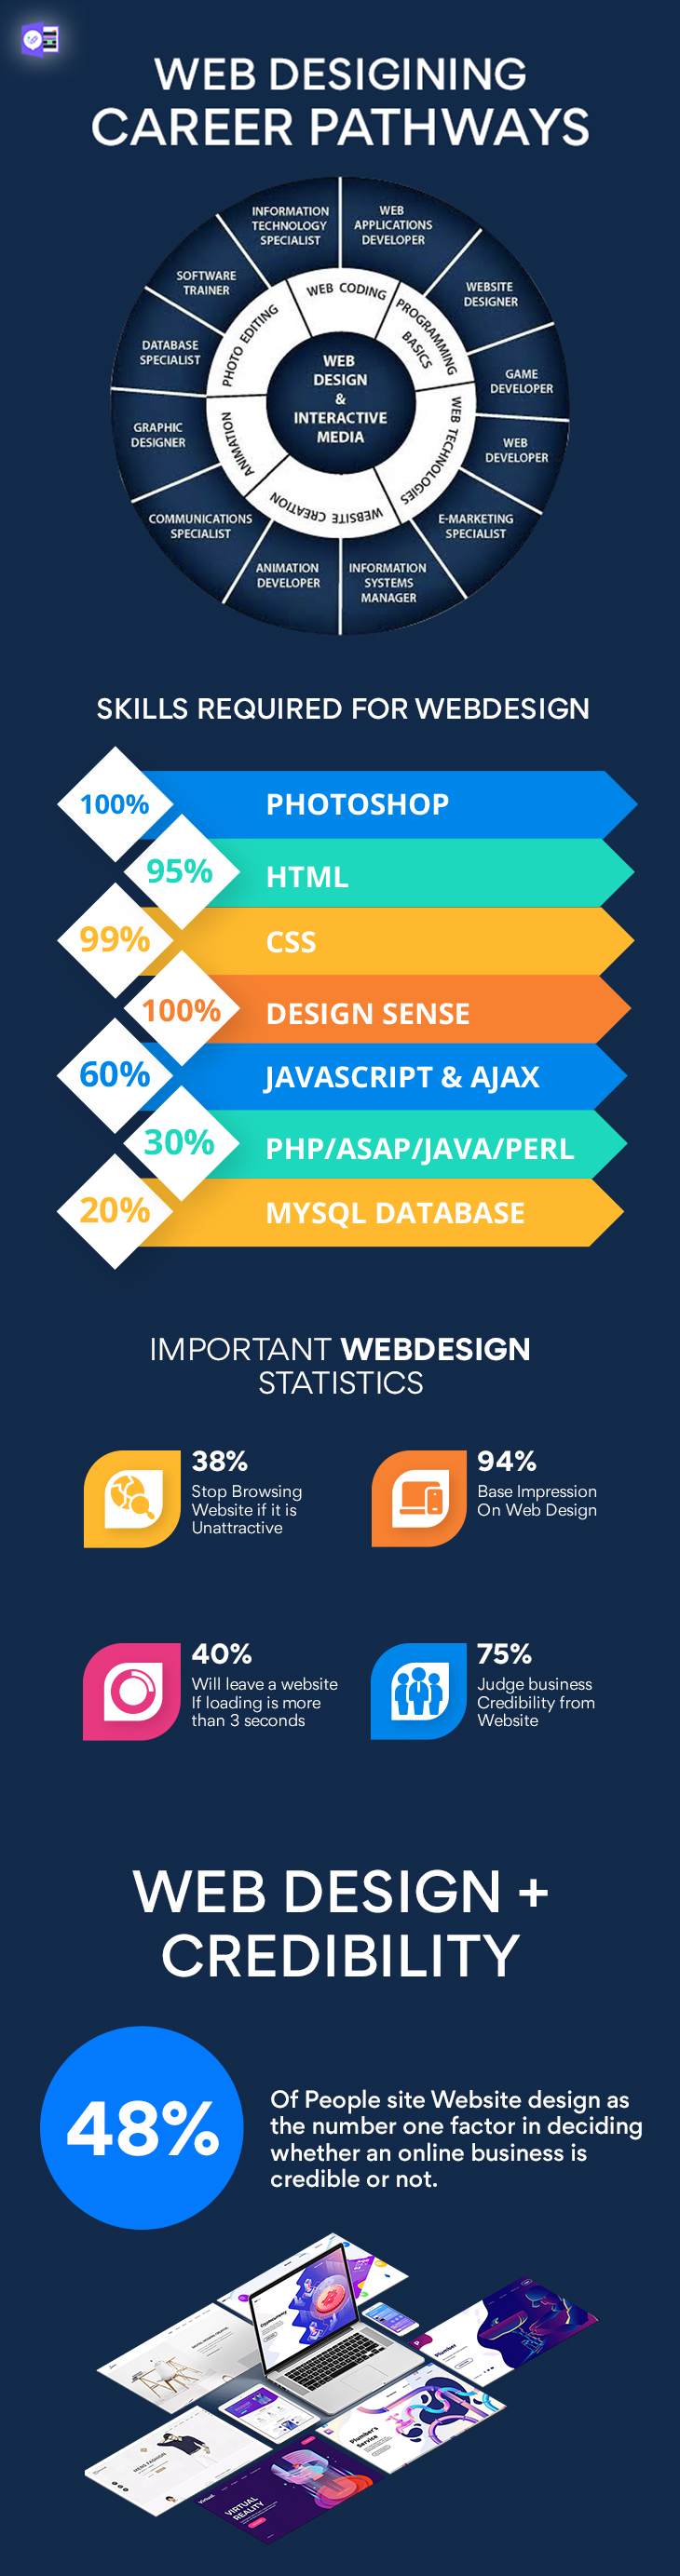 web designing course learning path infographic